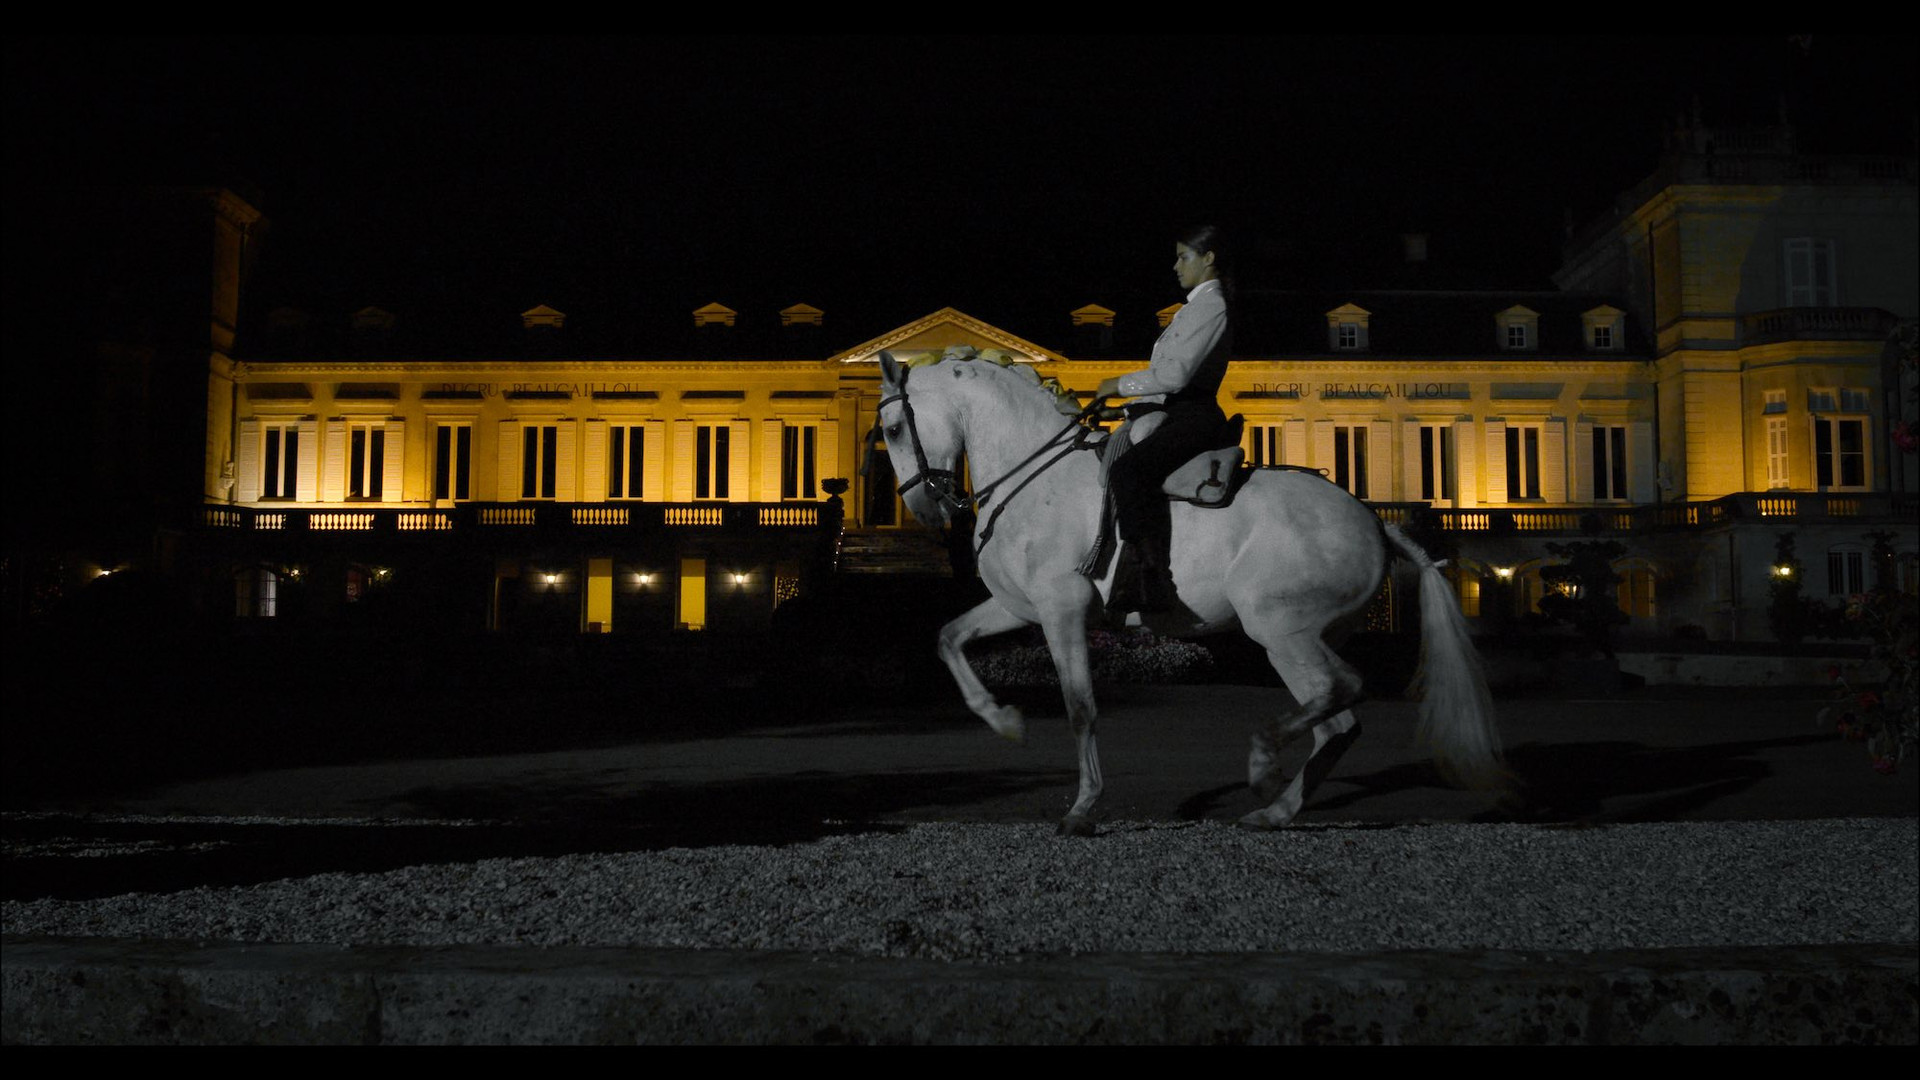 PMG_Productions -Lea Vicens Chateau Ducru Beaucaillou